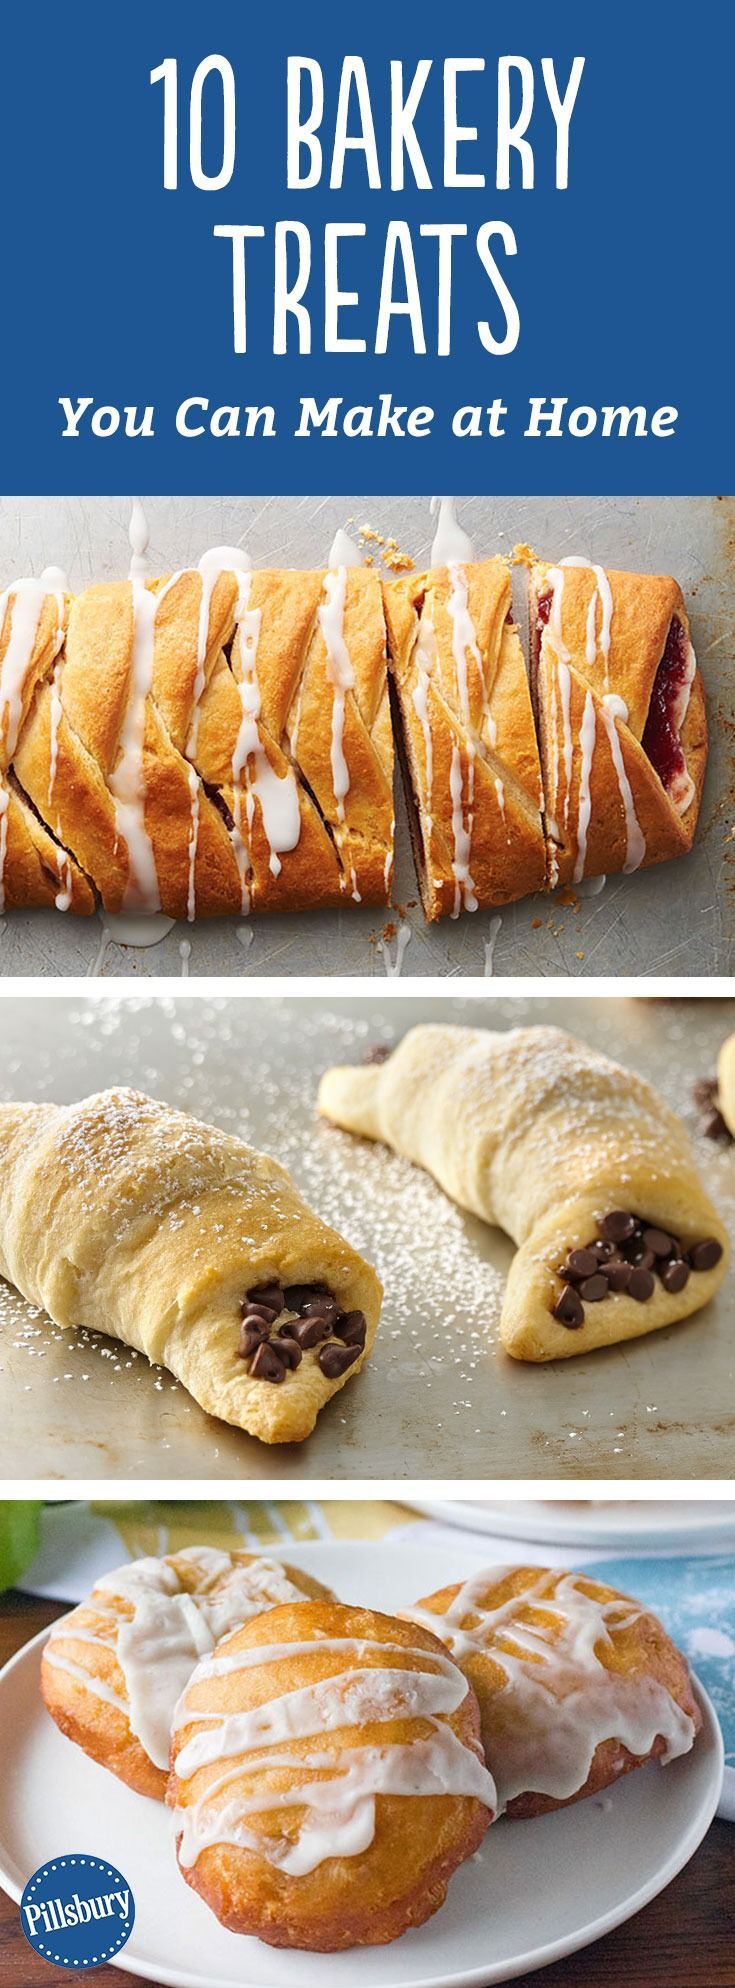 10 Bakery Treats You Can Make at Home - Make treats reminiscent of your favorite bakery items with these easy recipes. From chocolate crescents to your favorite cheese danish, you really can do it all at home!